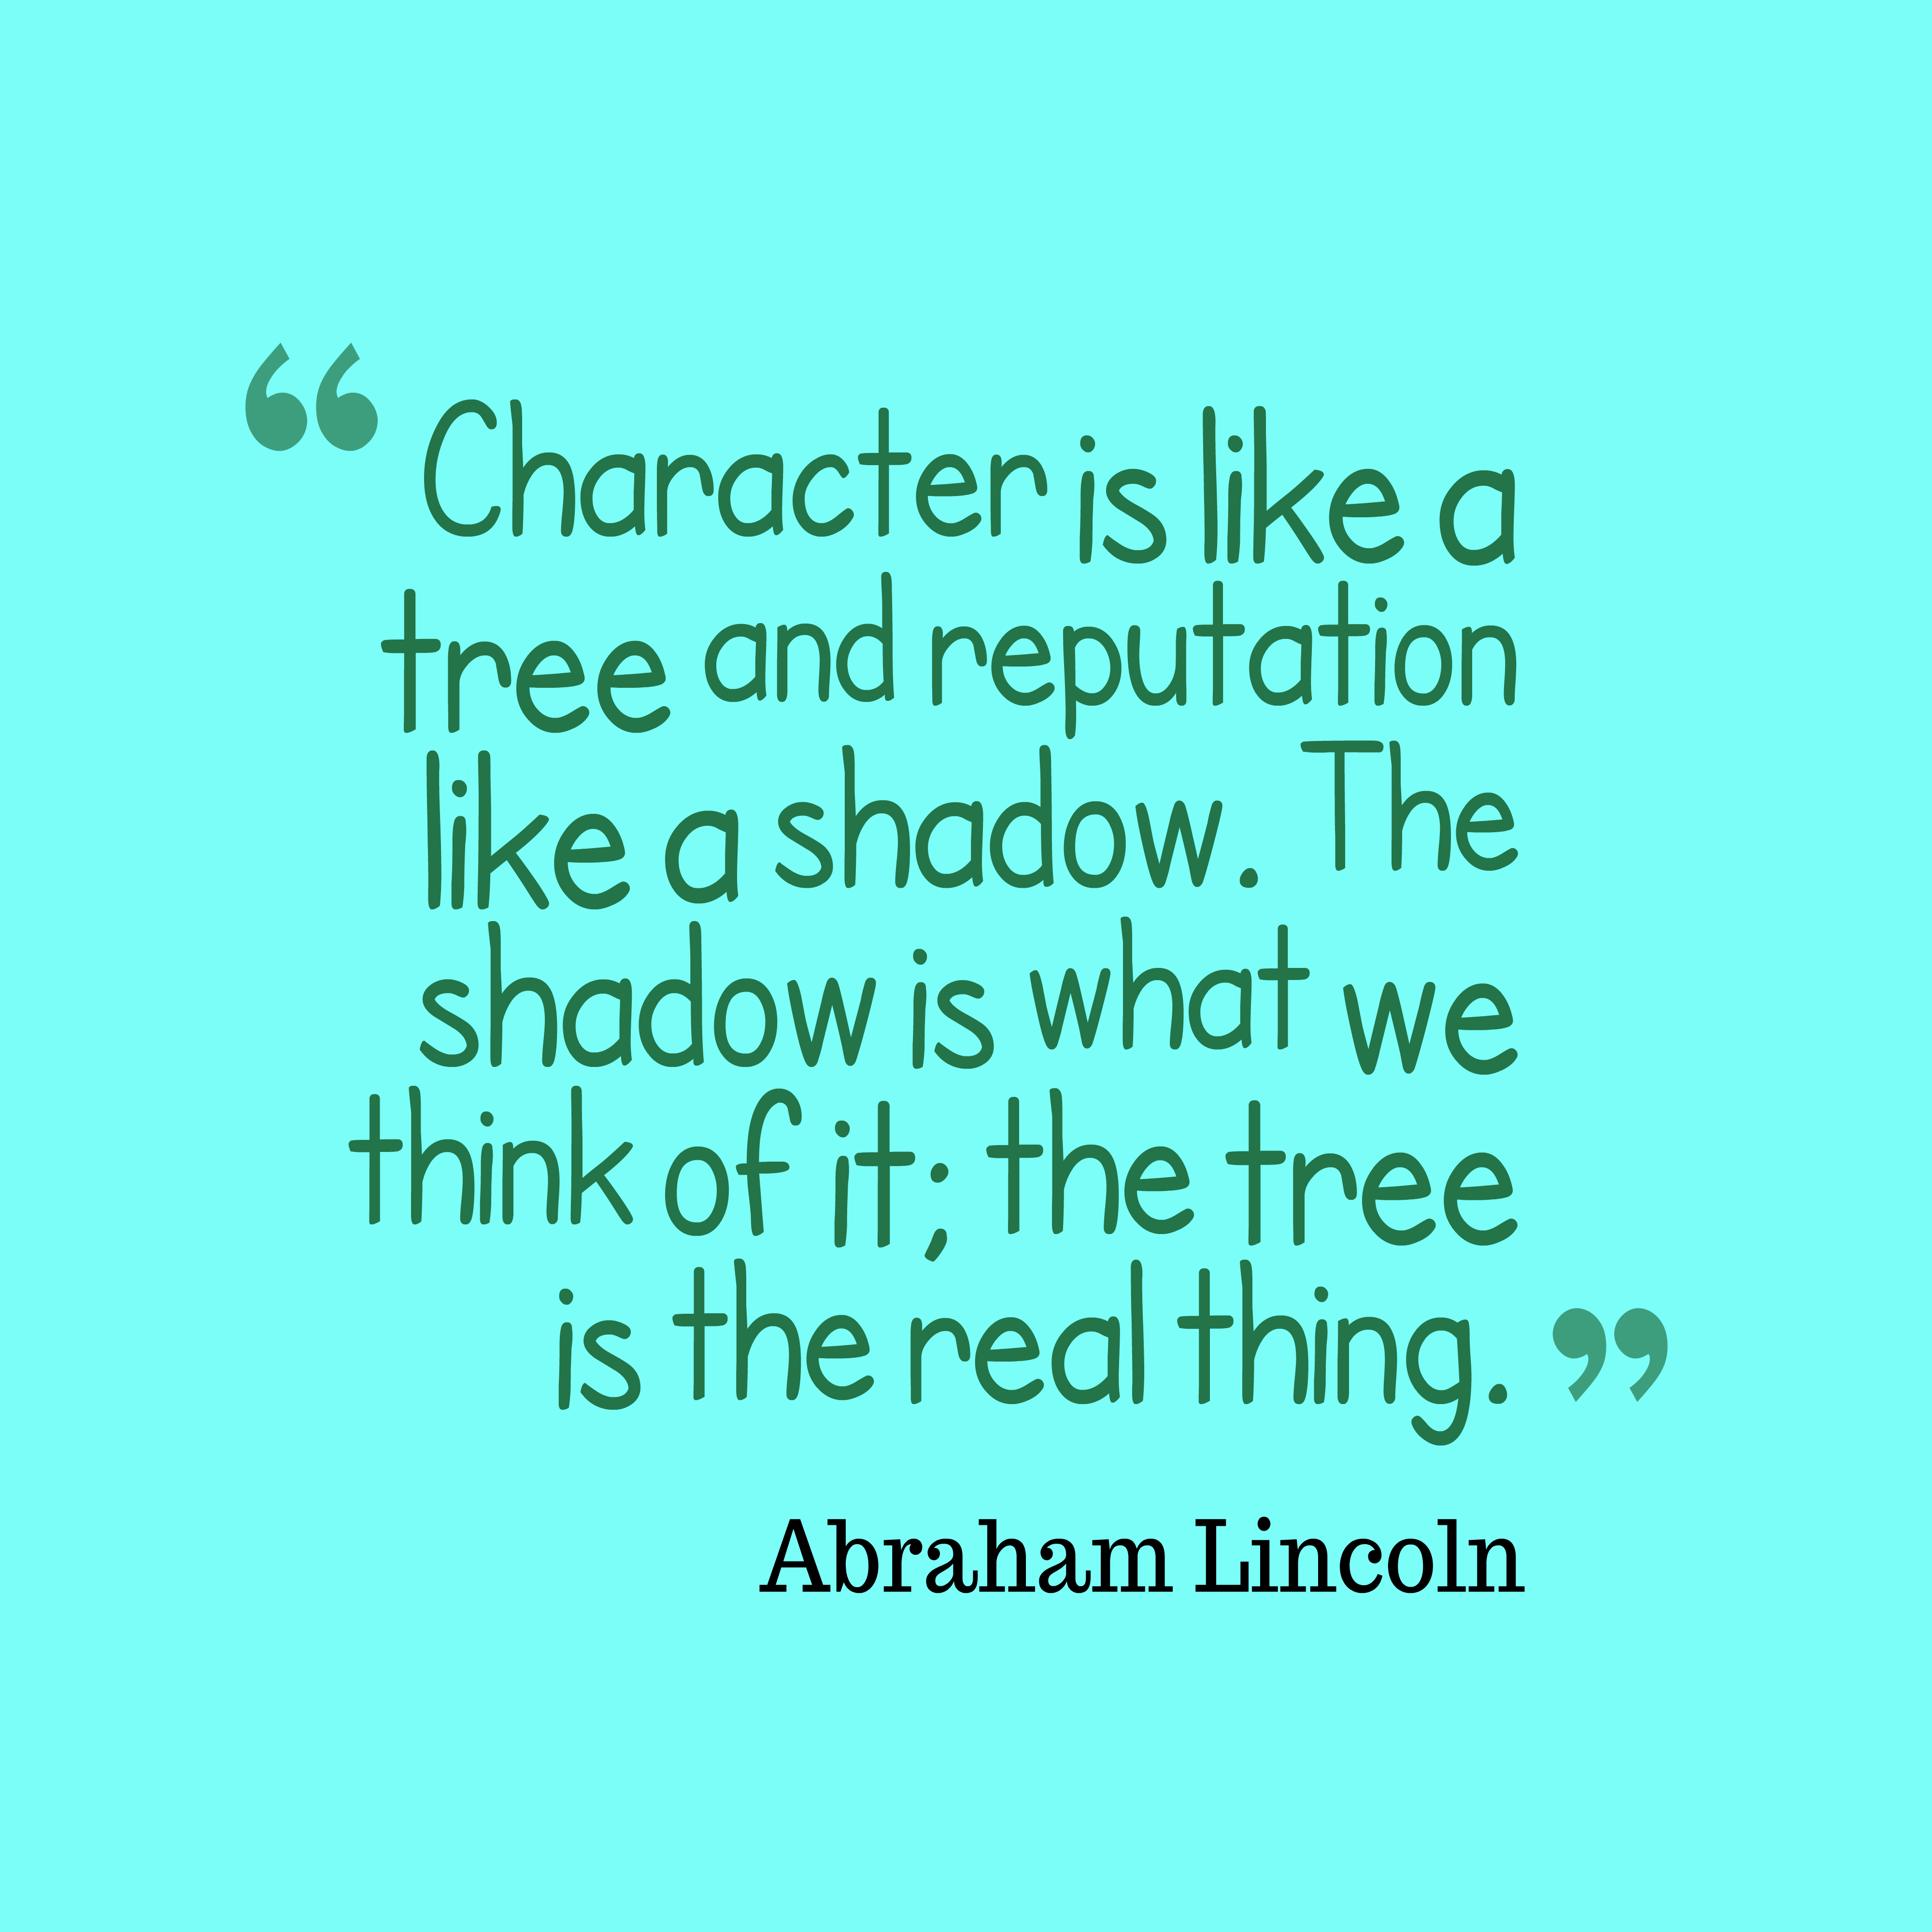 Quotes About Character Picture Abraham Lincoln Quote About Character Quotescover